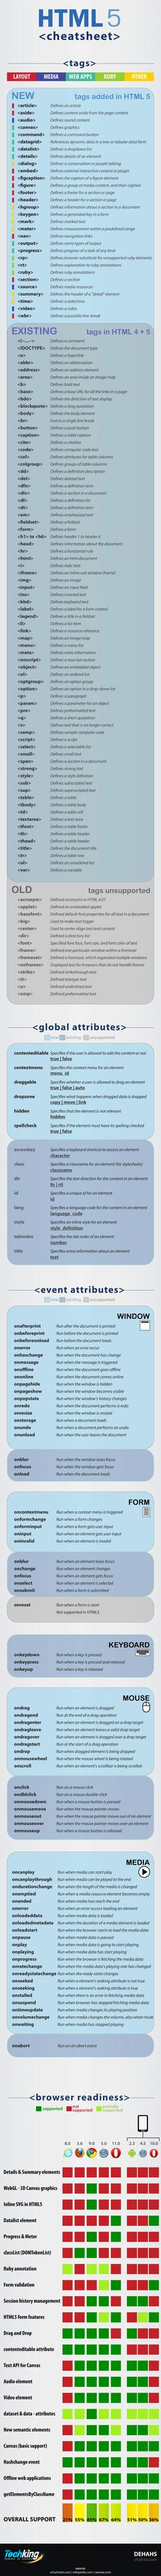 Ultimate HTML5 reference guide